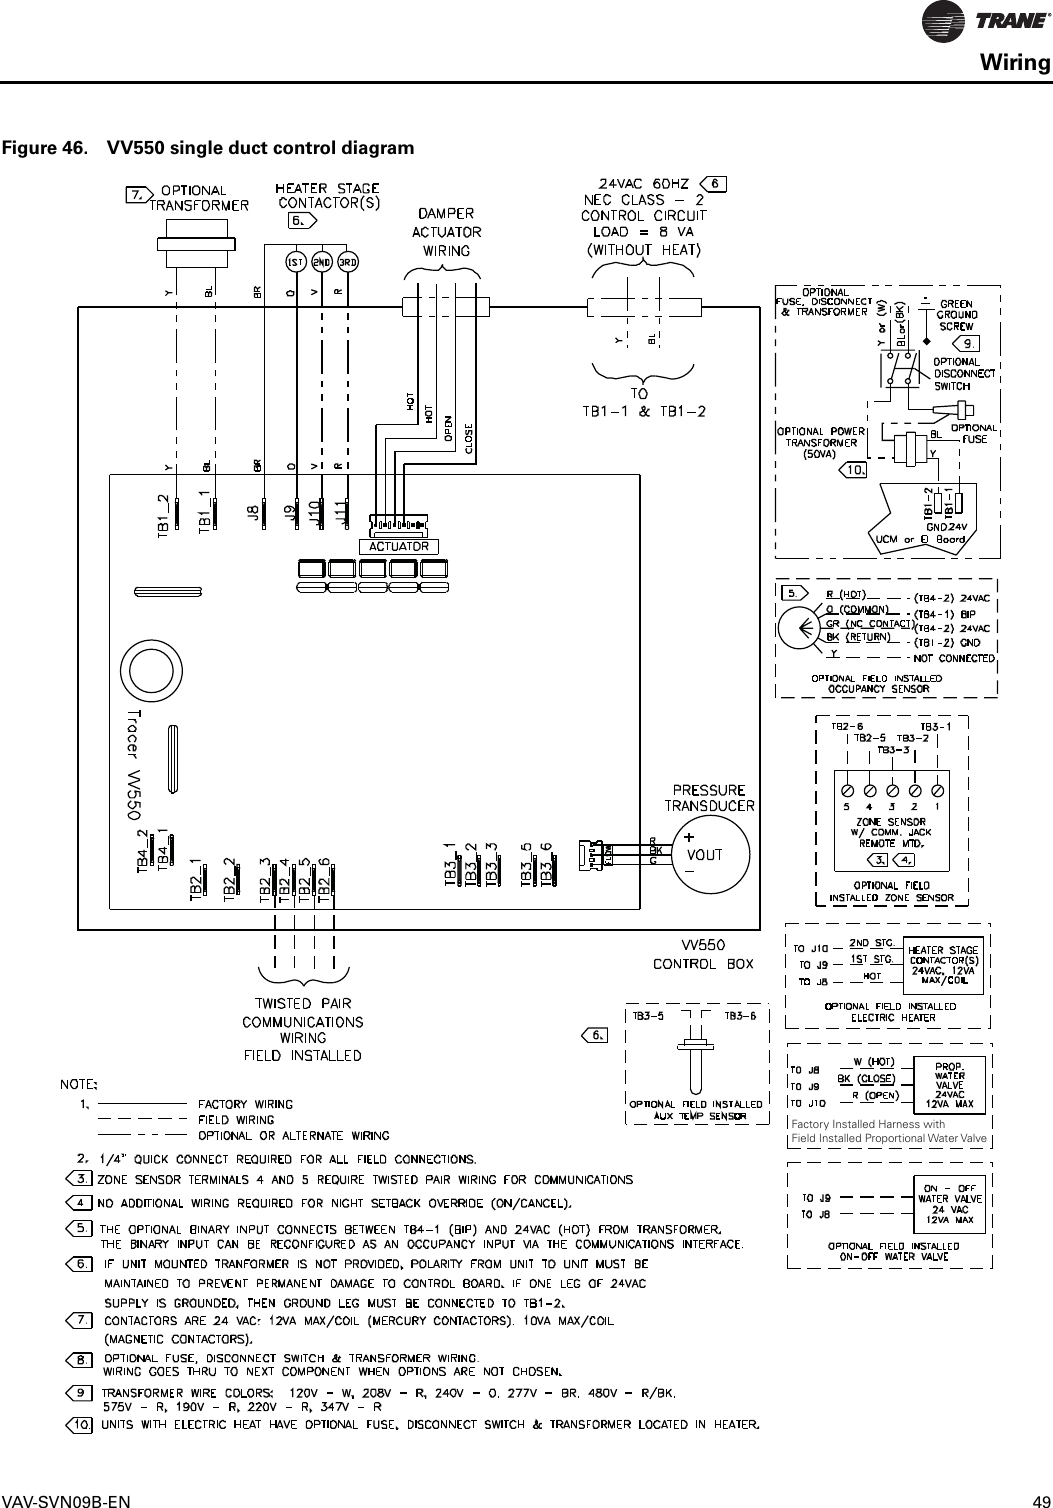 trane vav wiring diagram where are your appendix located uc400 bacnet integration uc 600